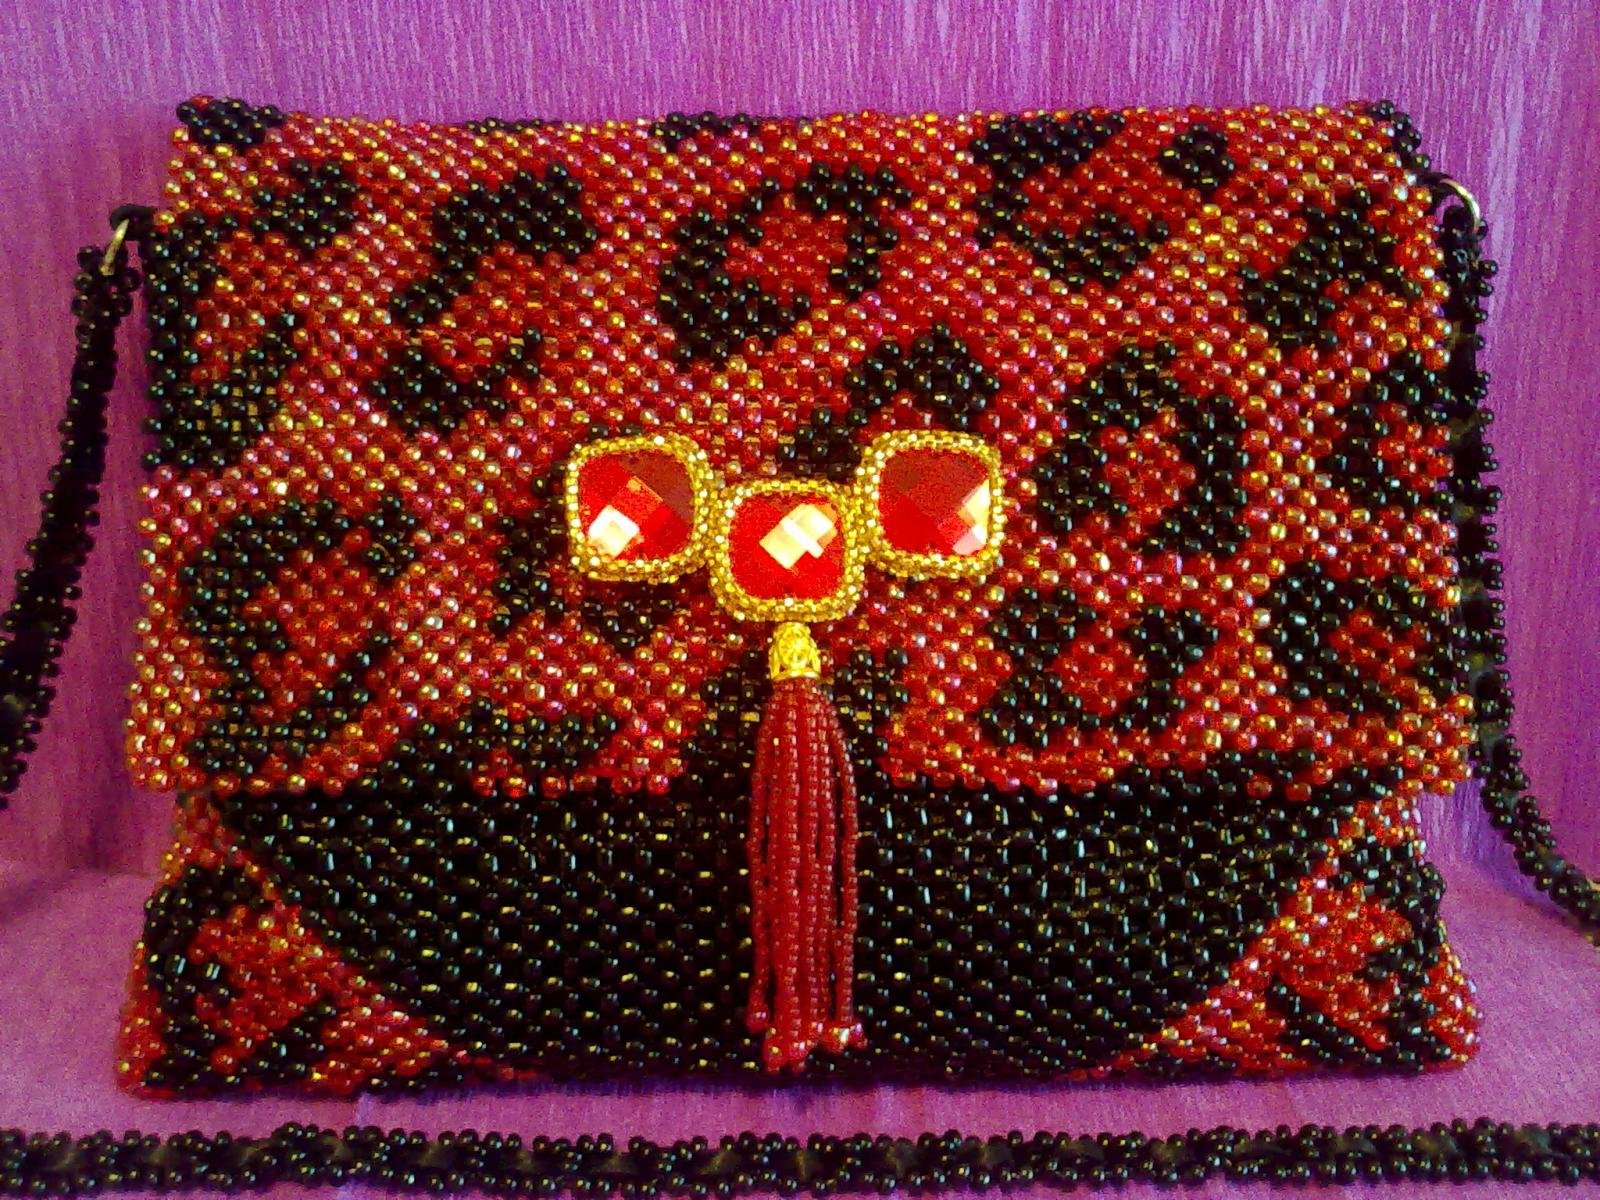 17-bag-beaded-clutch-bedsmagic